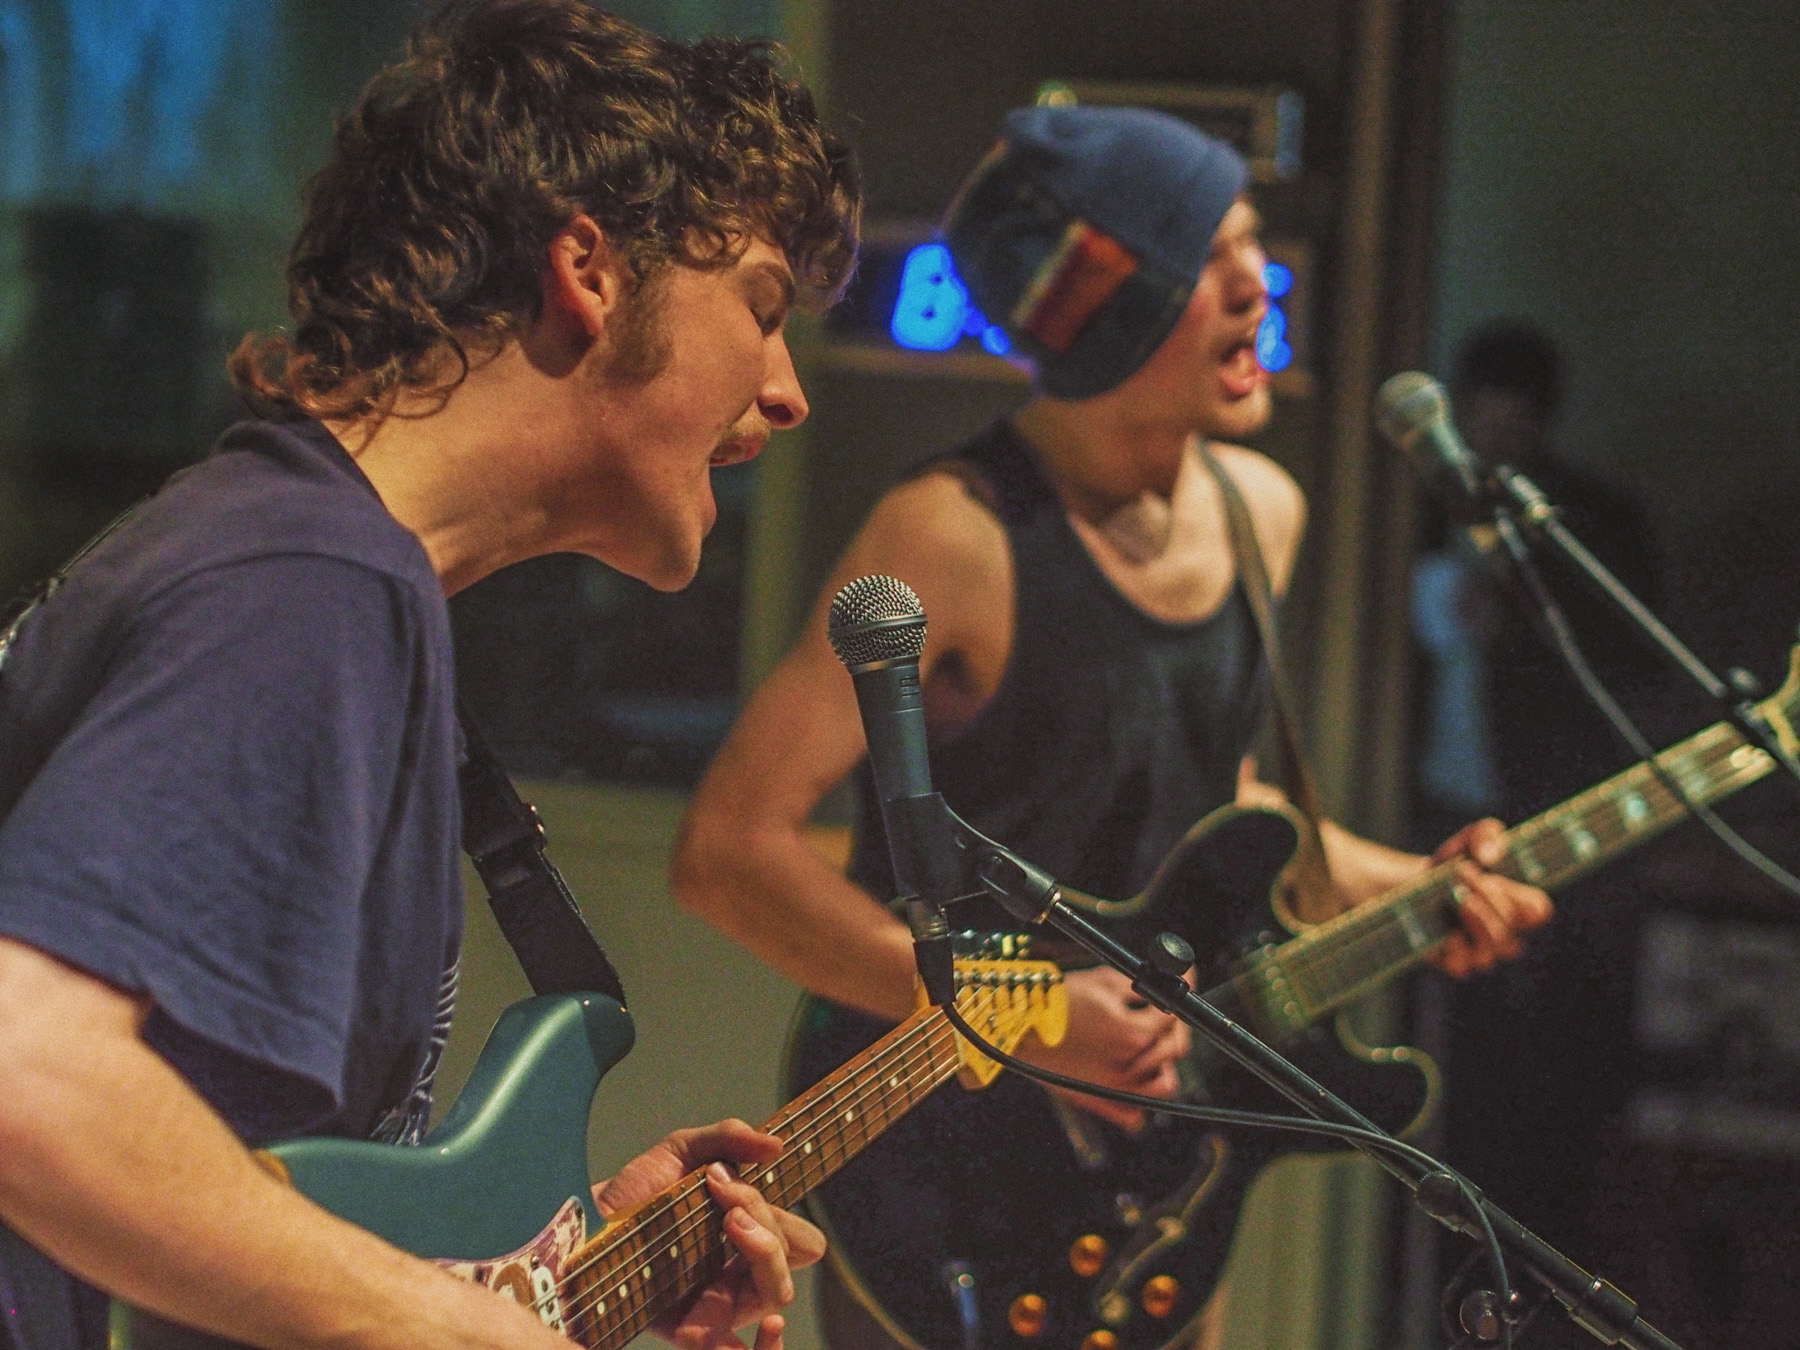 Baltimore's own Sun Club performed live on air for a studio audience on Dec. 16 at the WTMD Studios. Photos by Steve Parke.